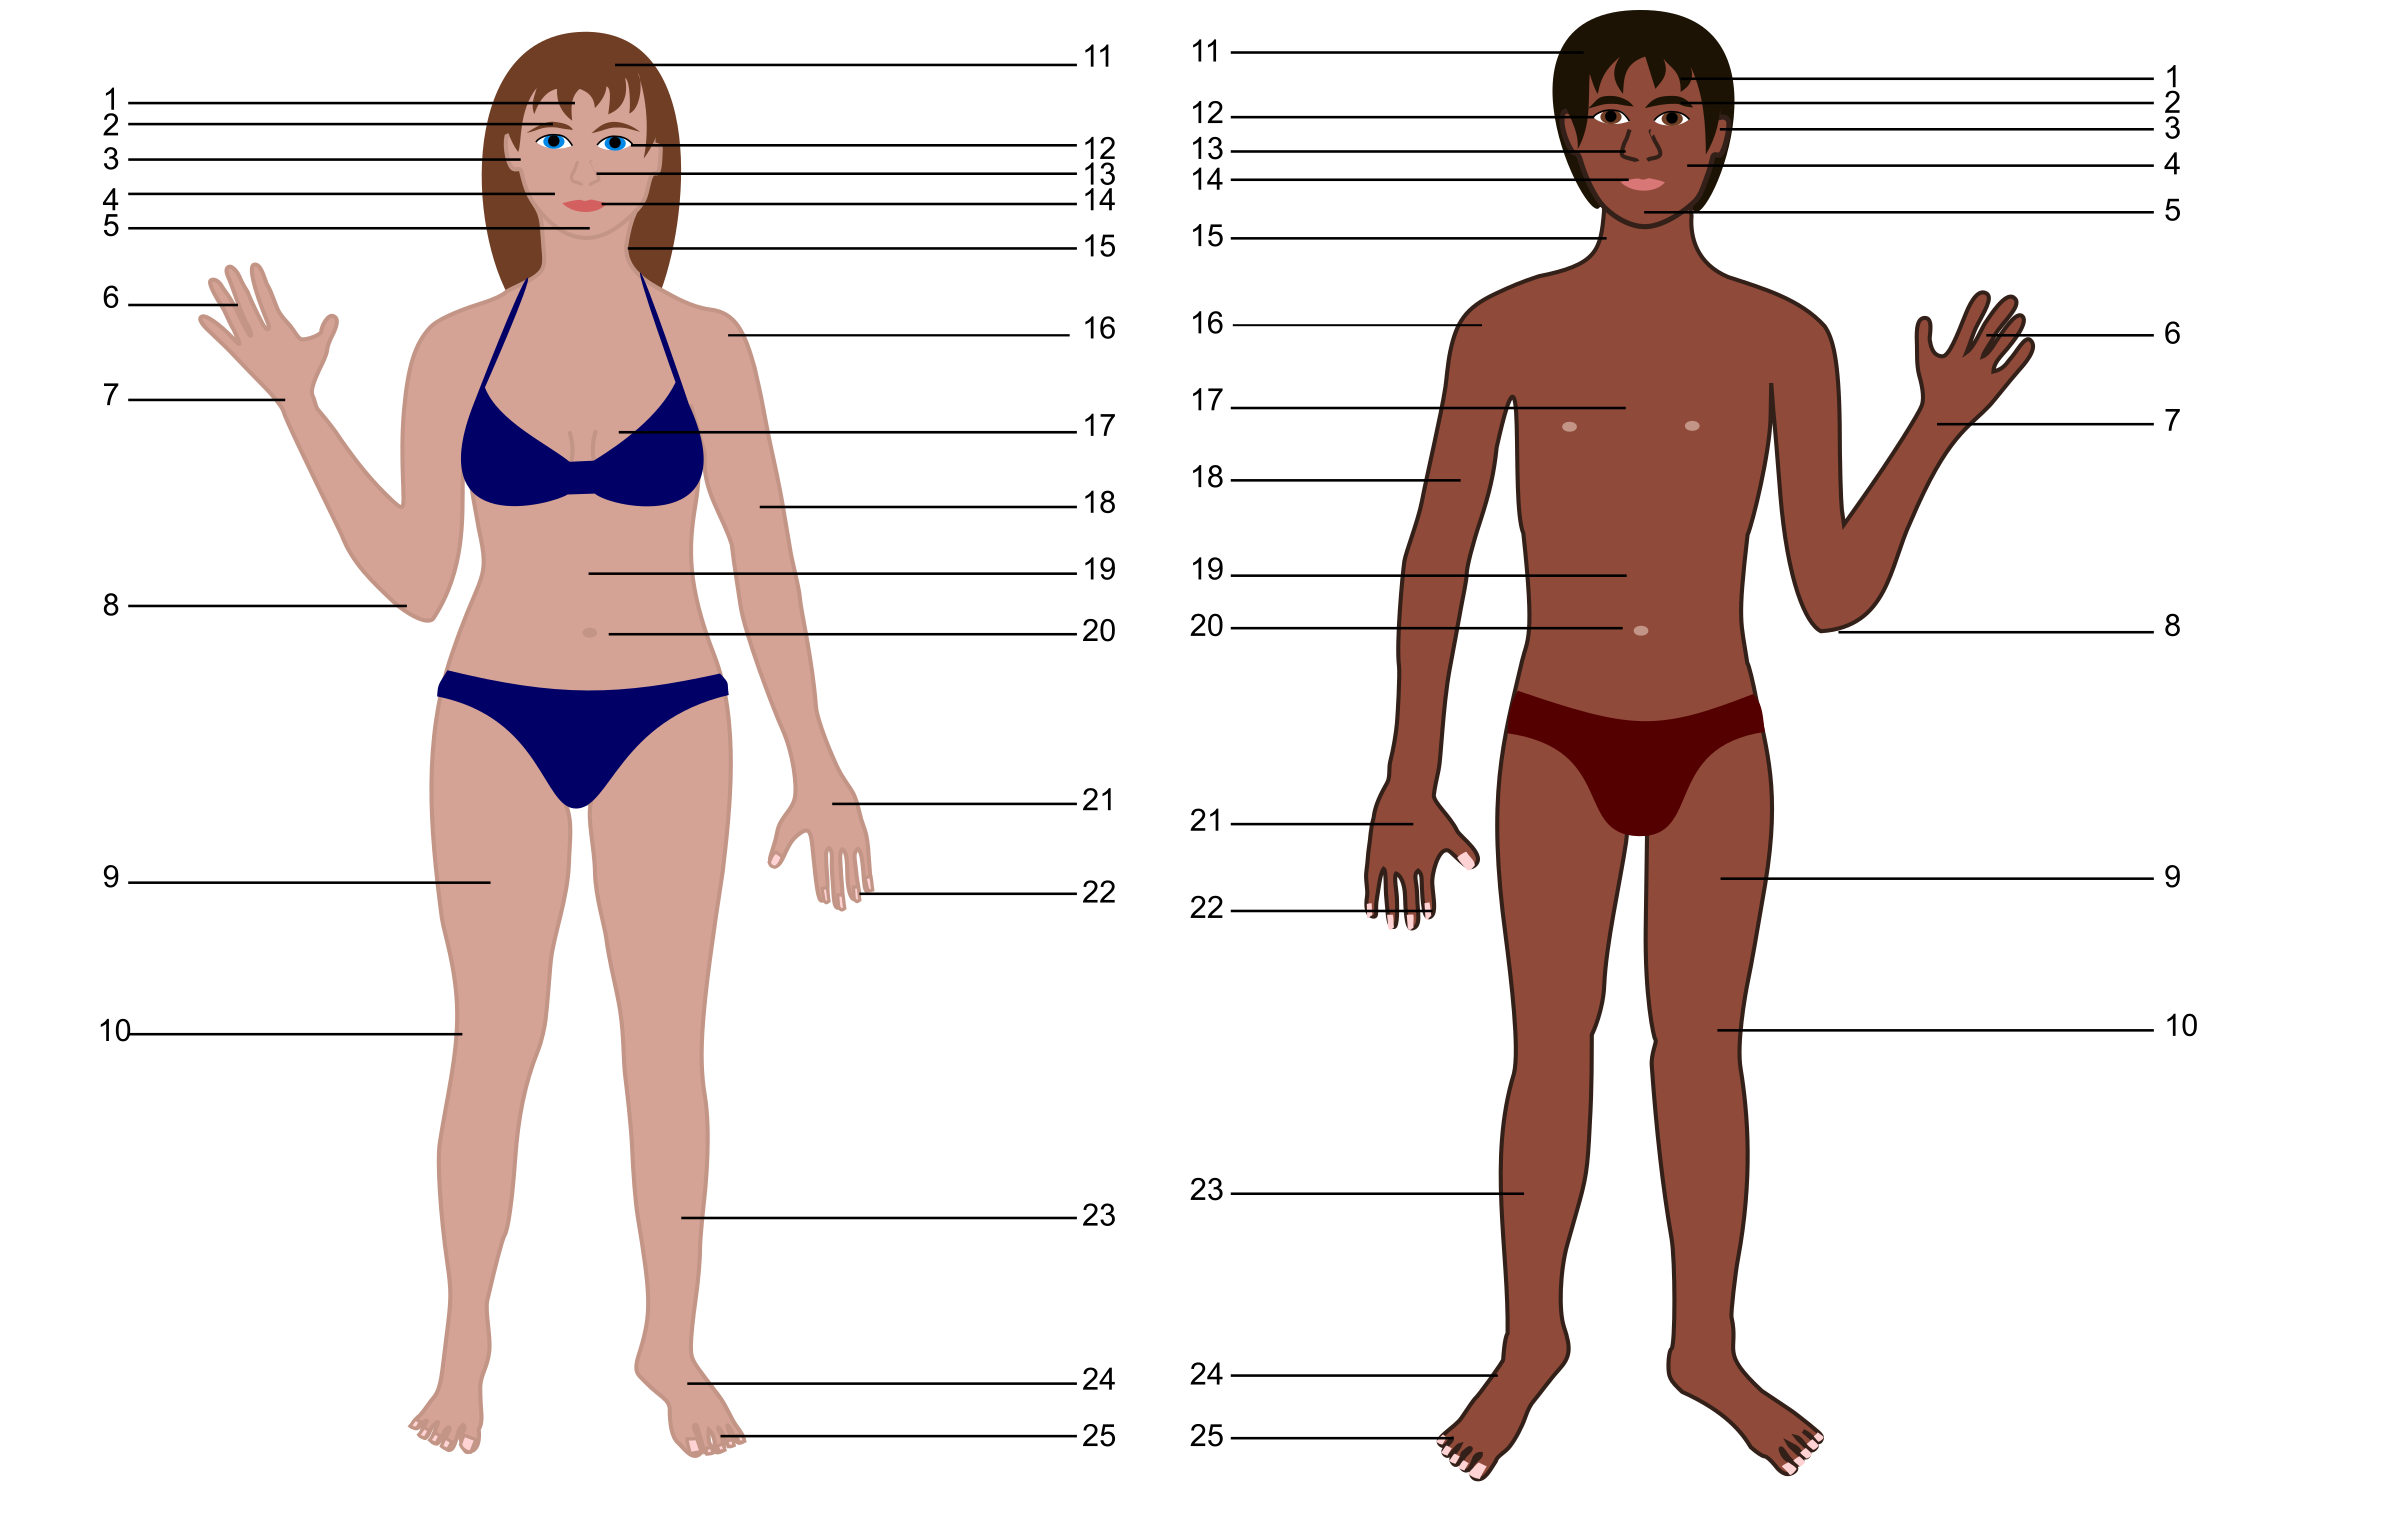 Clipart Human Body Both Genders With Numbers